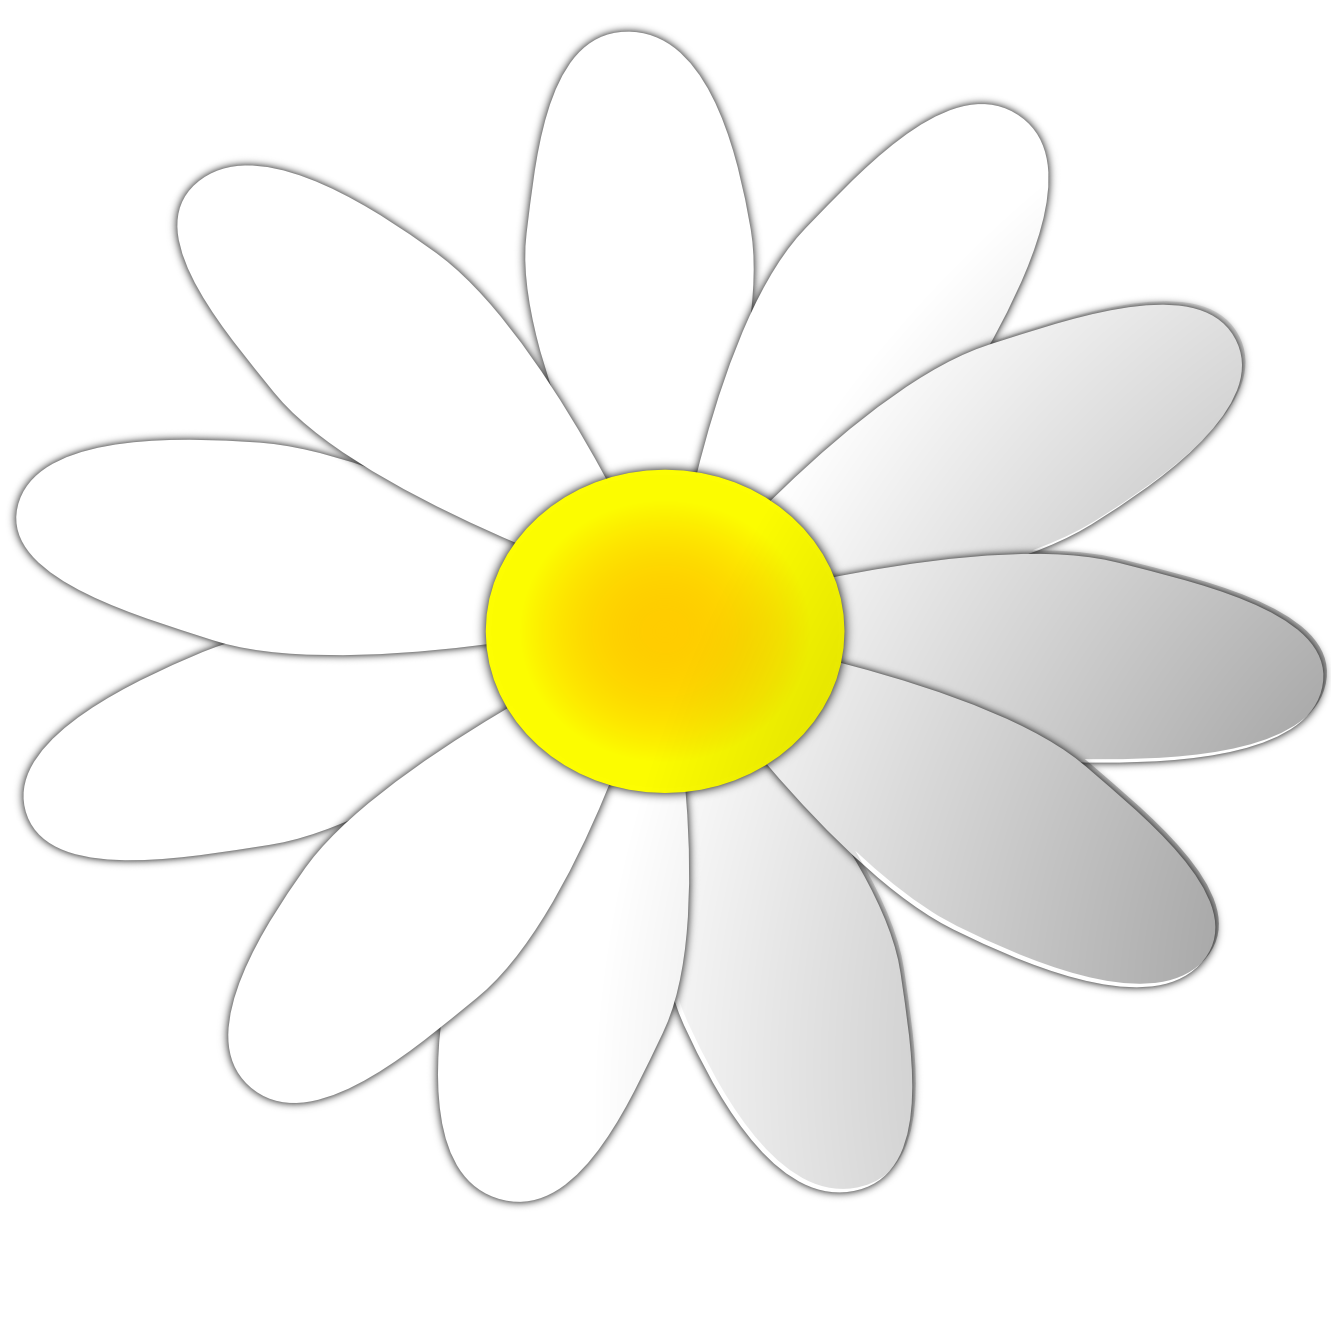 Daisy clipart vine. Untitled document google drive